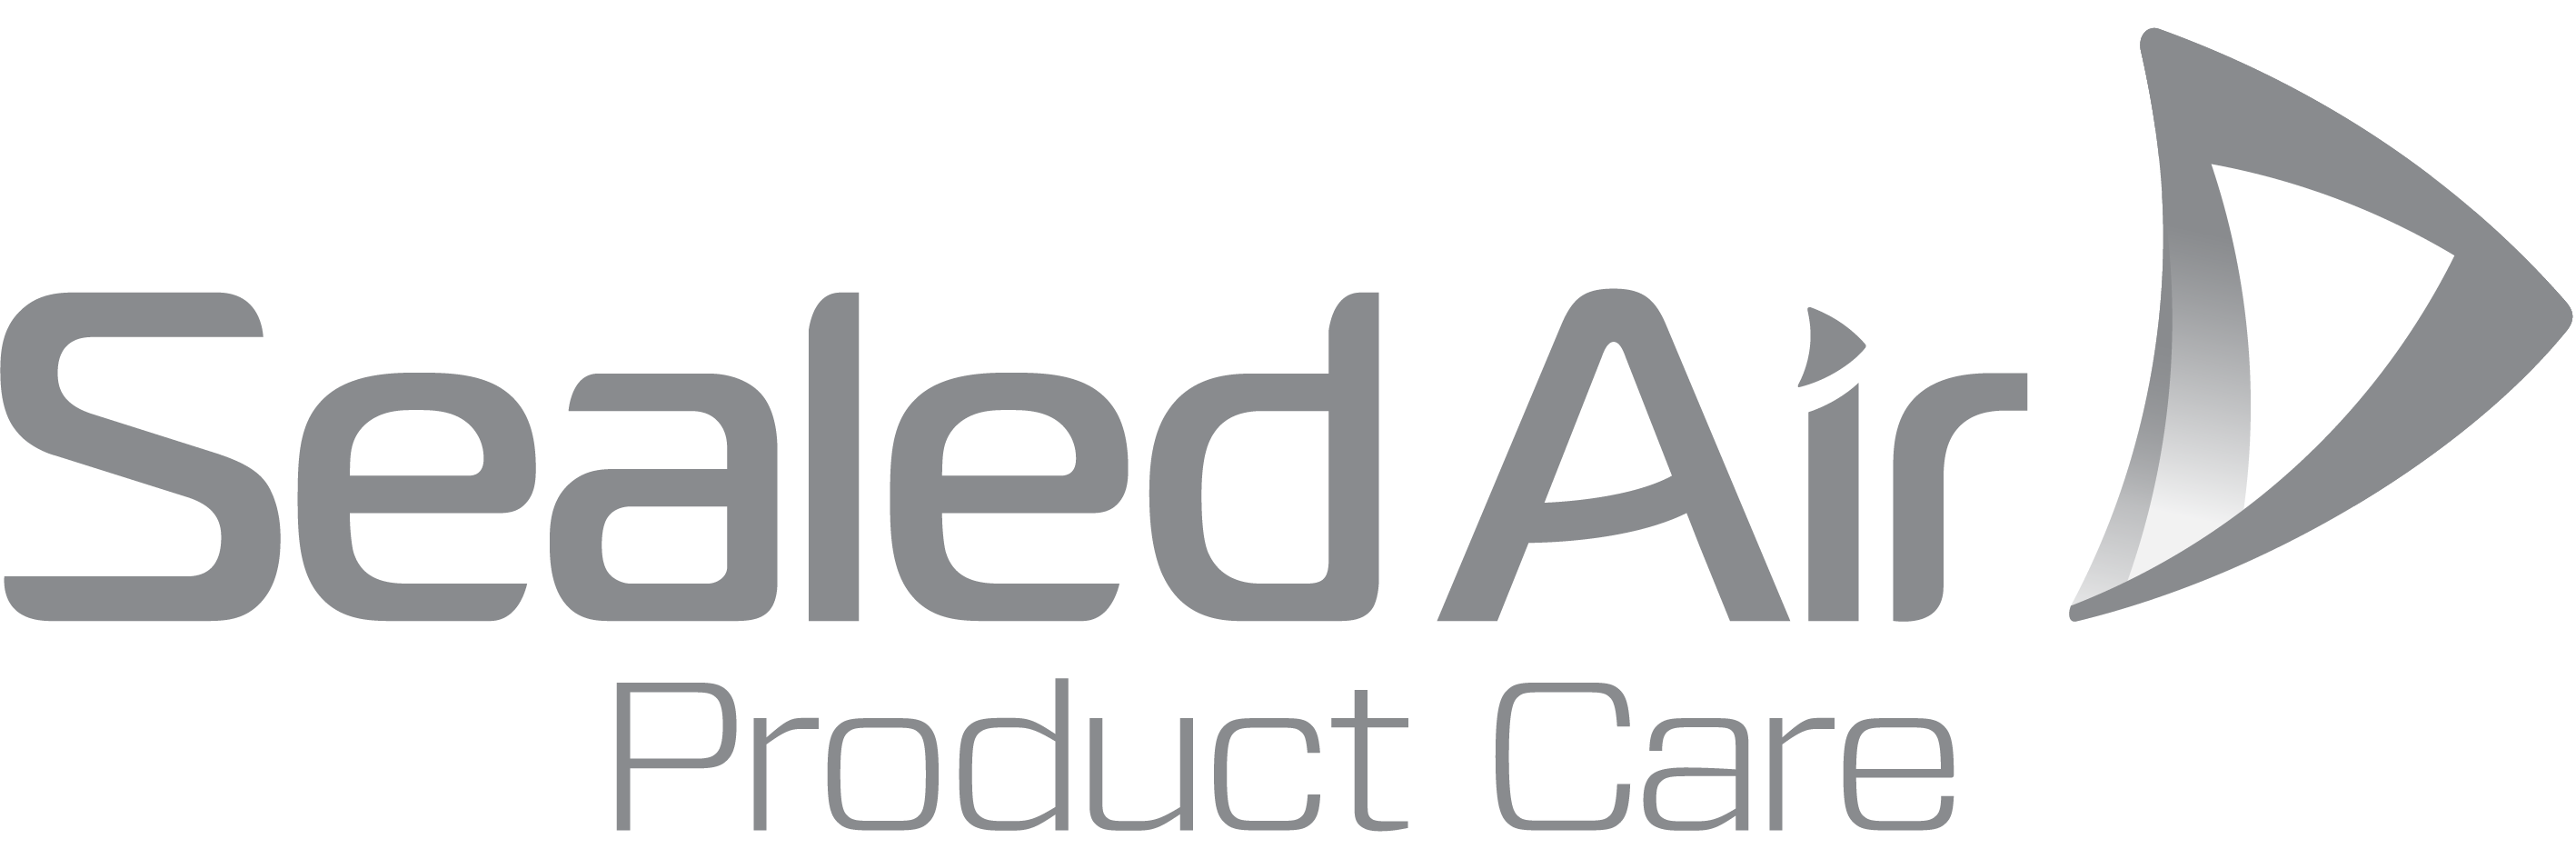 Sealed Air Product Care logo